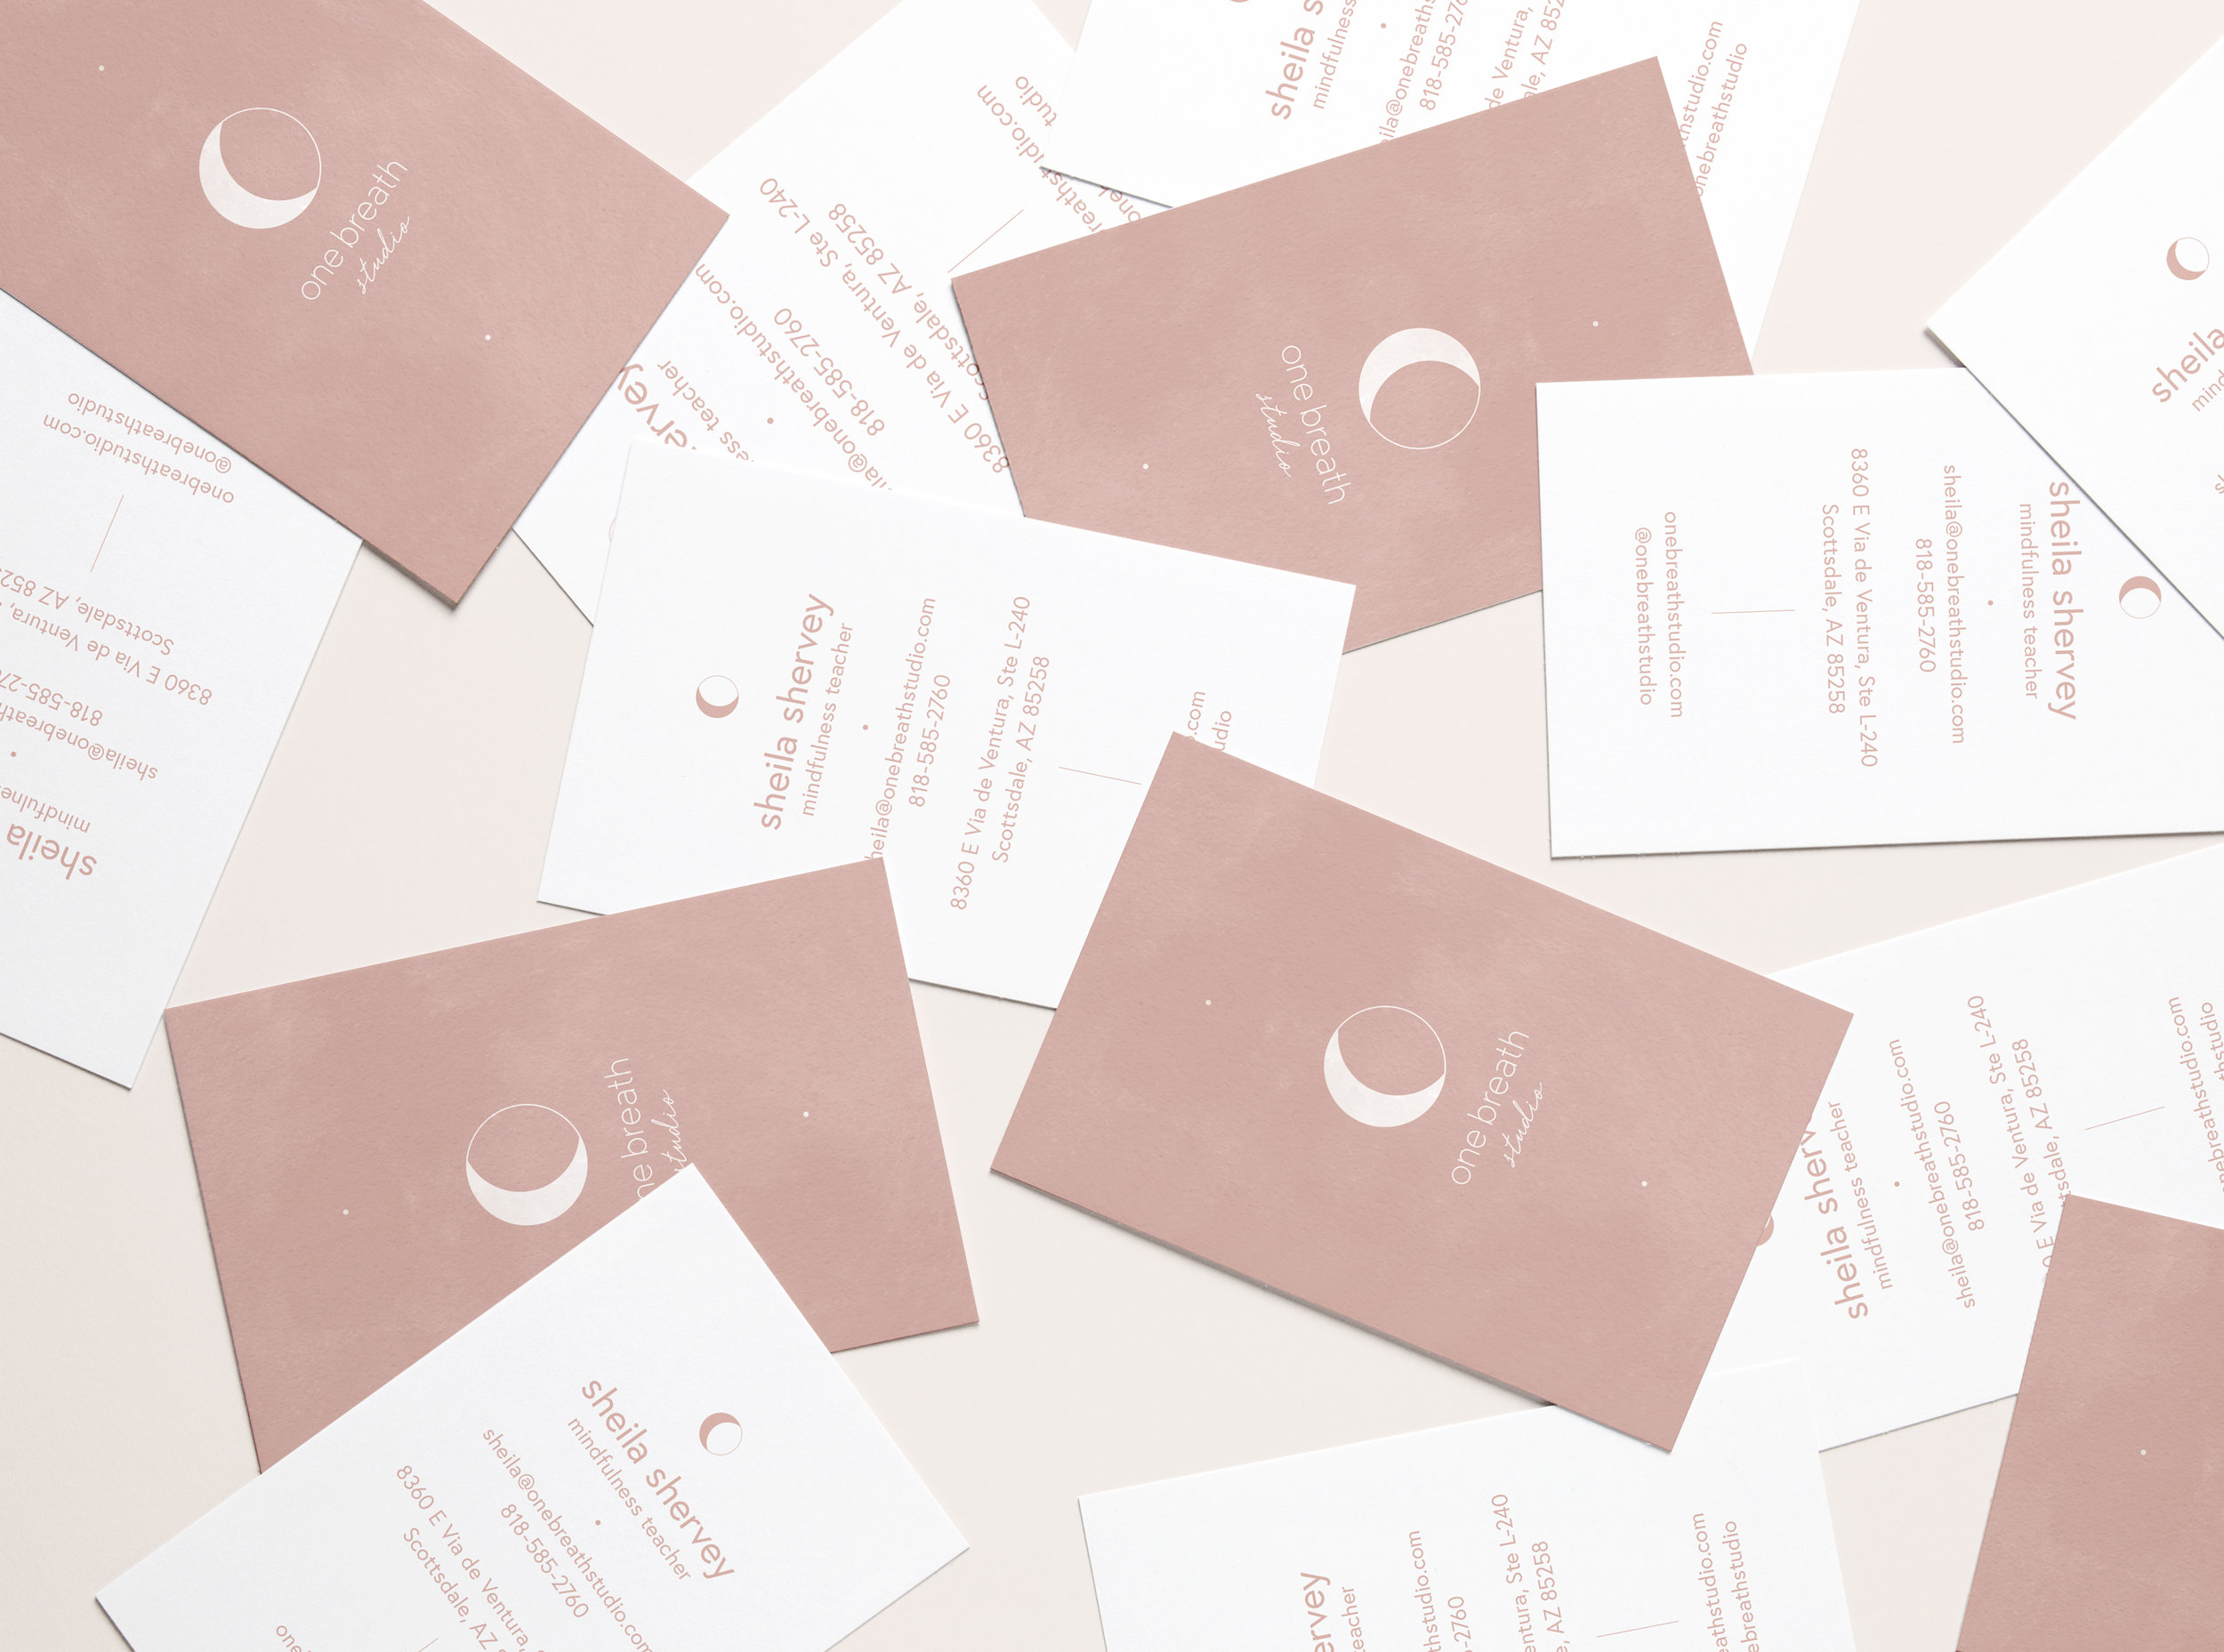 One Breath Studio - Branding + Website DesignCreative Riot branded One Breath Studio, a Scottsdale based meditation studio. The branding was inspired by women, repetition, cycles of the moon and the ocean. Creative Riot executed the brand strategy, logo design, business cards and stationary,art direction for photography,website design, e-mail Mailchimp designs,social media graphics and Instagram strategy.